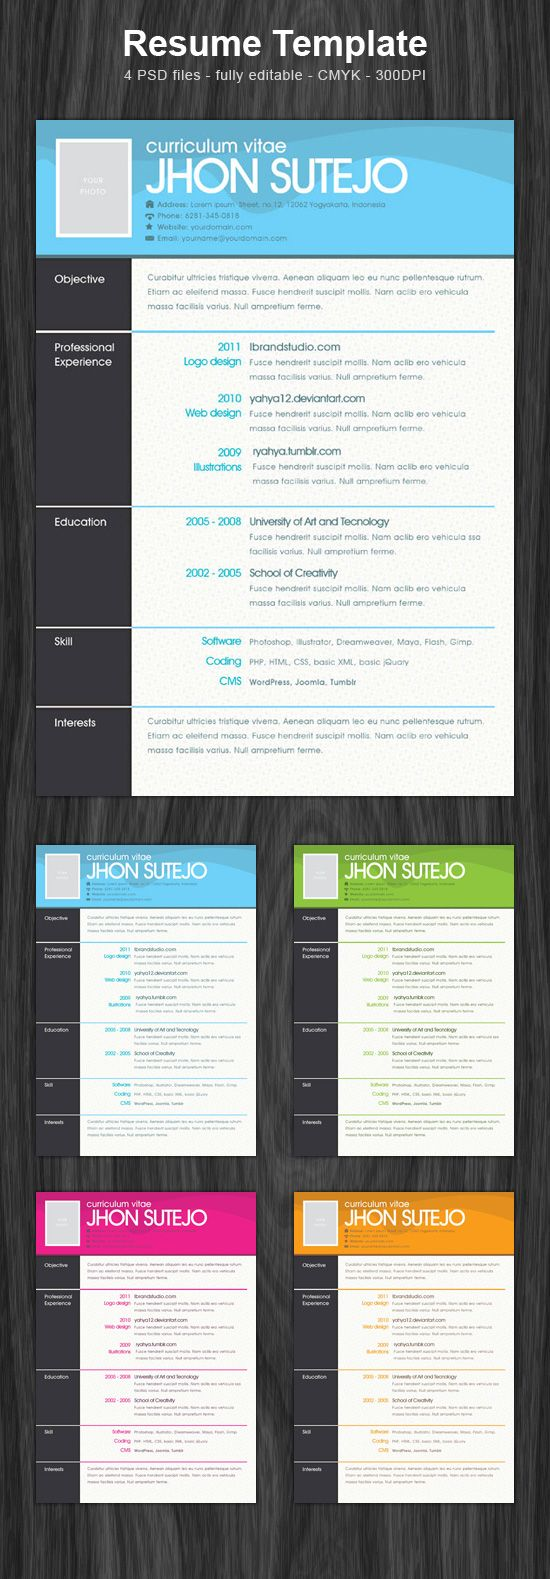 Freebie one page pattern resume template psd template and patterns freebie one page pattern resume template psd ibrandstudio yelopaper Image collections